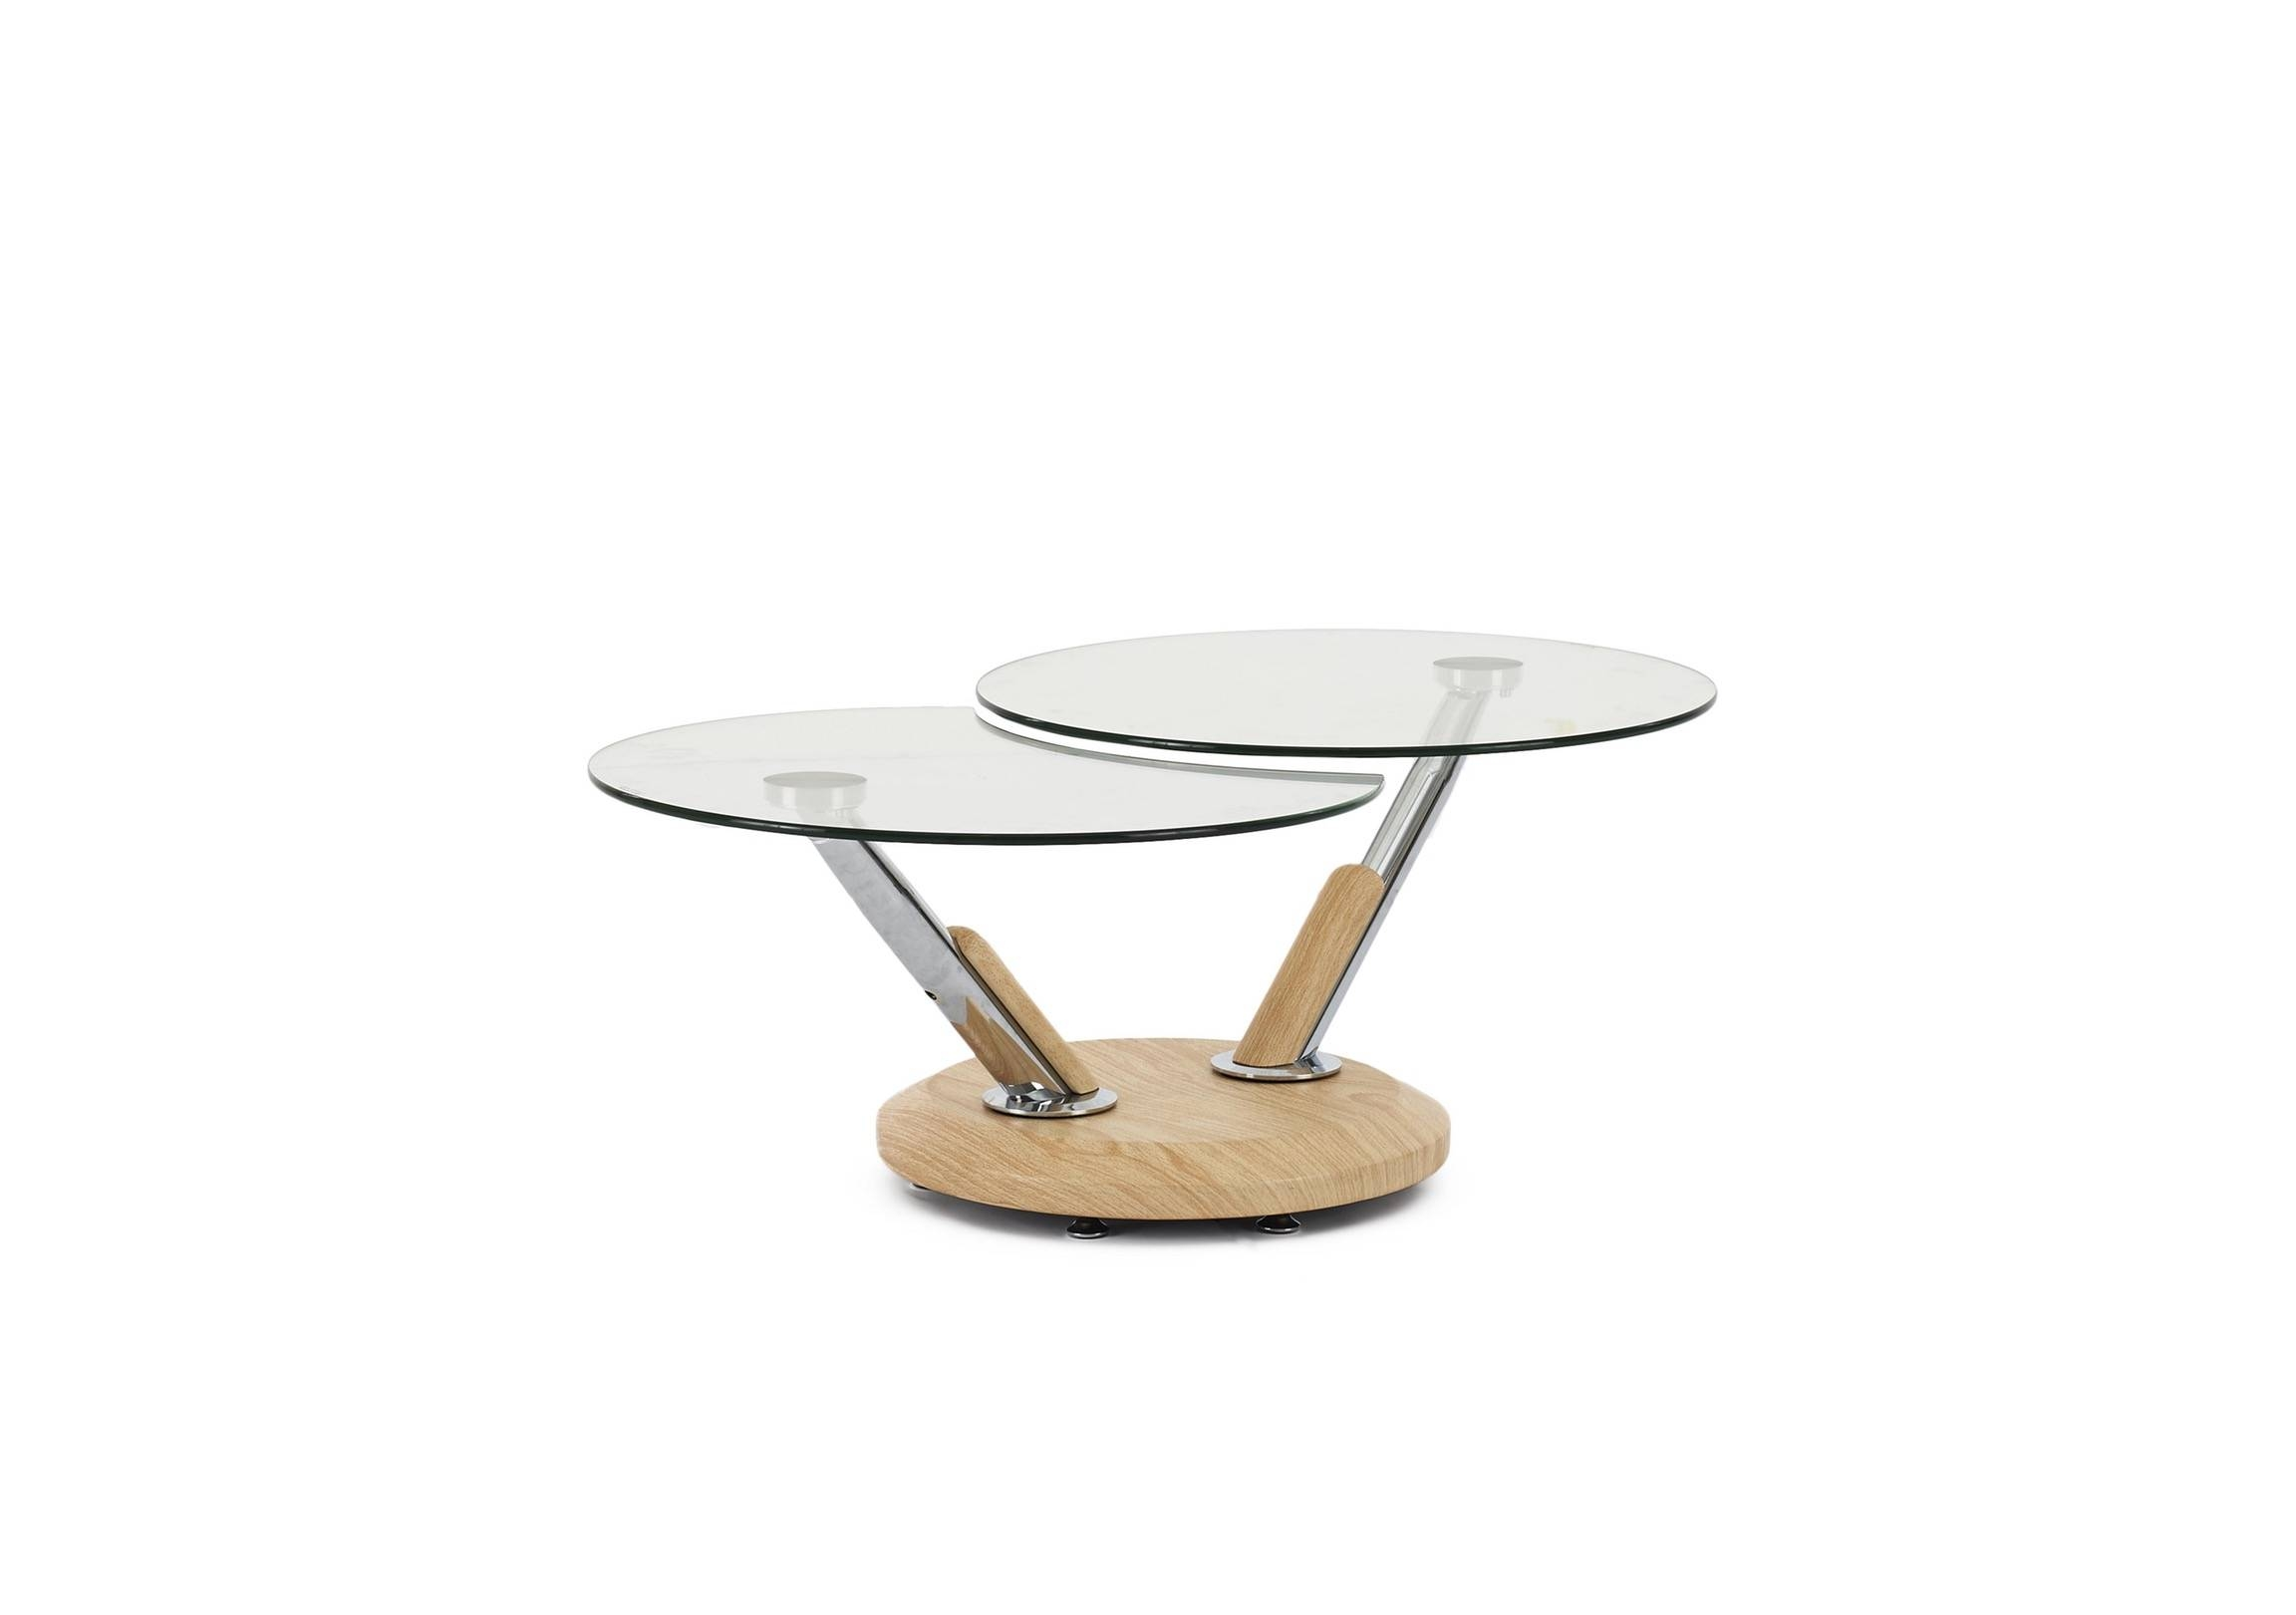 Tokyo Glass Swivel Coffee Table See Here Tables Ideas Aeon Part 5 within Tokyo Coffee Tables (Image 22 of 30)